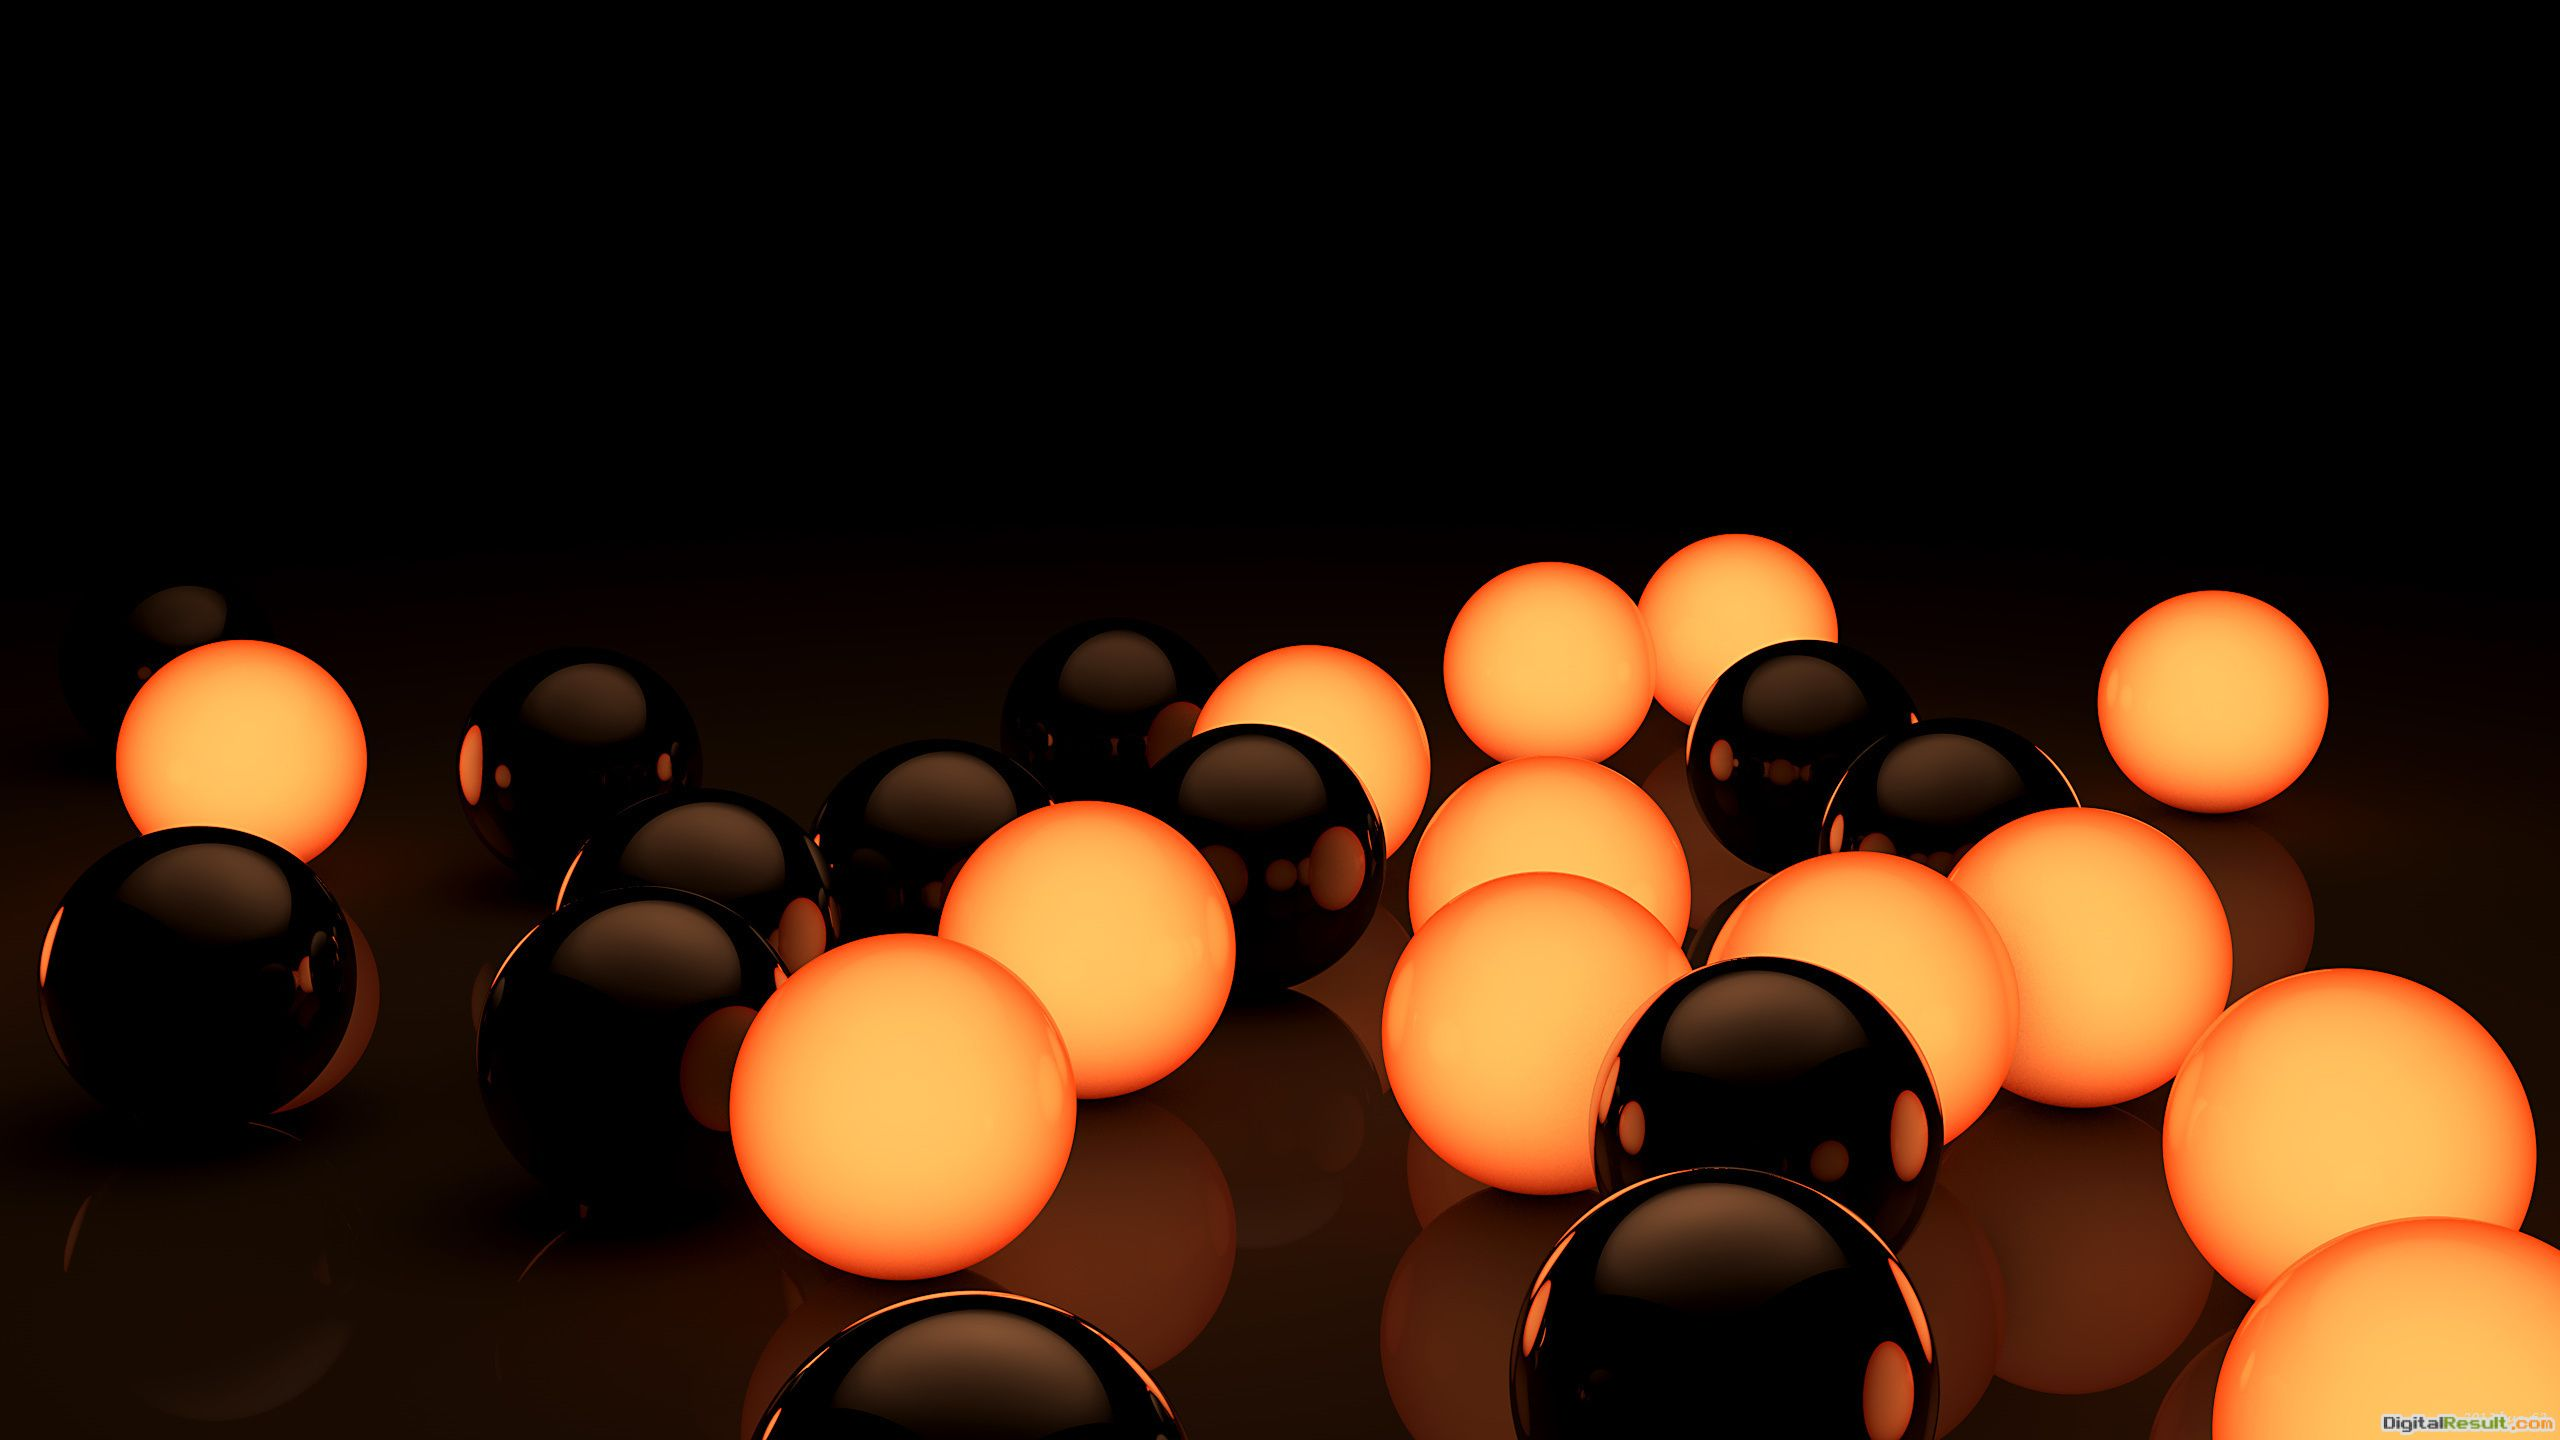 on October 6, 2015 By admin Comments Off on 3D Balls Wallpapers 1461